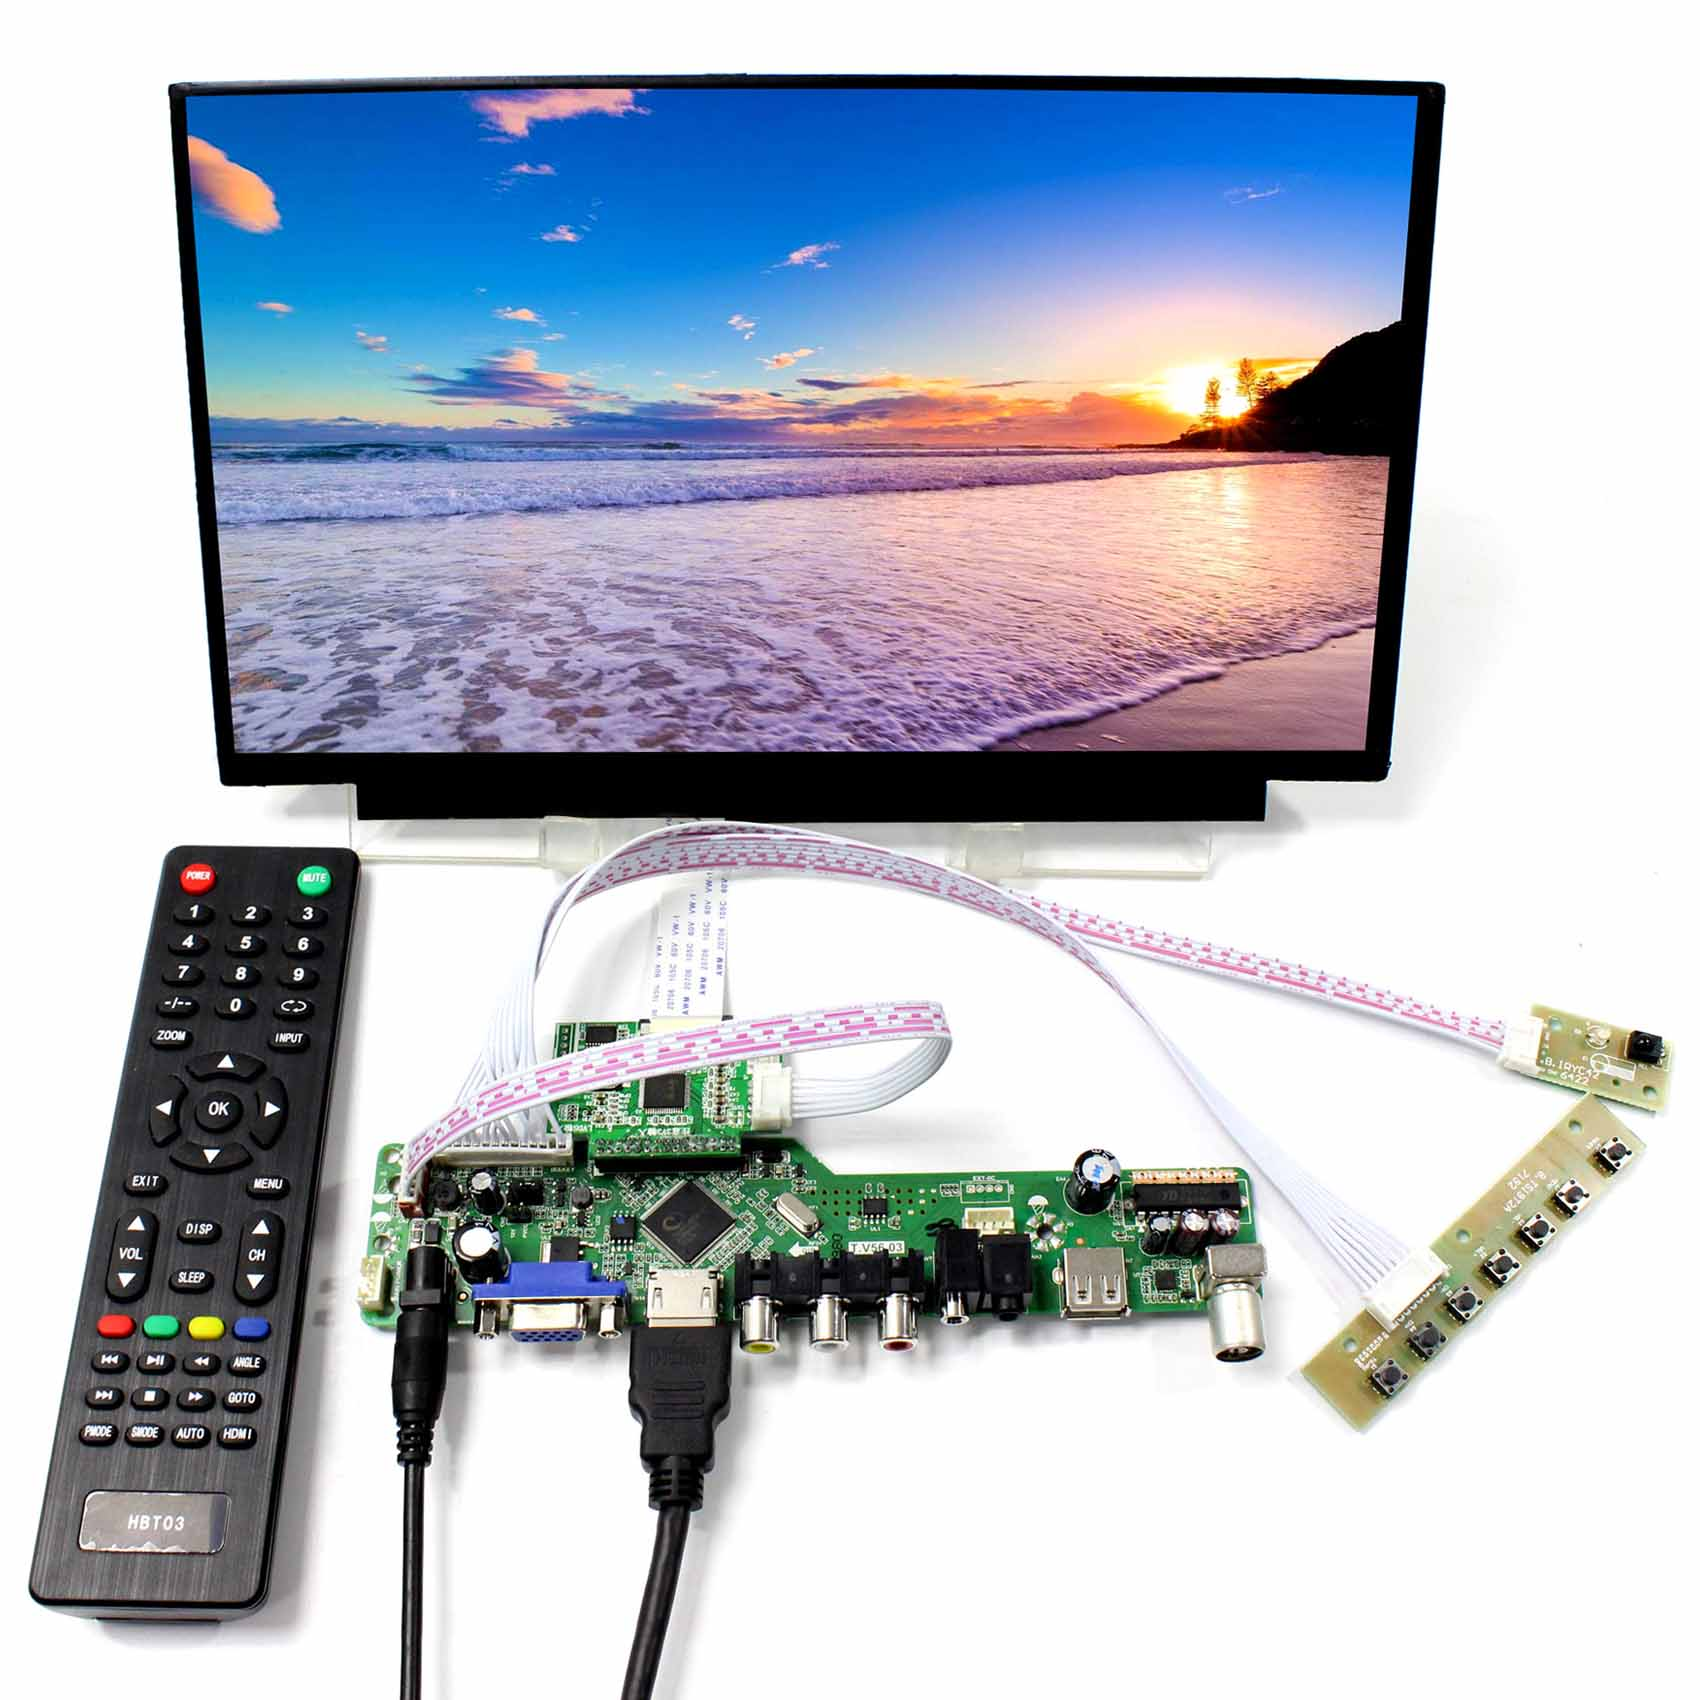 11.6inch N116HSE EJ1 EA1 IPS LCD Screen Backlight WLED HDMI VGA CVBS USB RF LCD Controller Board tv pc hdmi cvbs rf usb audio driver board 13 3inch lp133wd1 sla1 1600x900 ips lcd